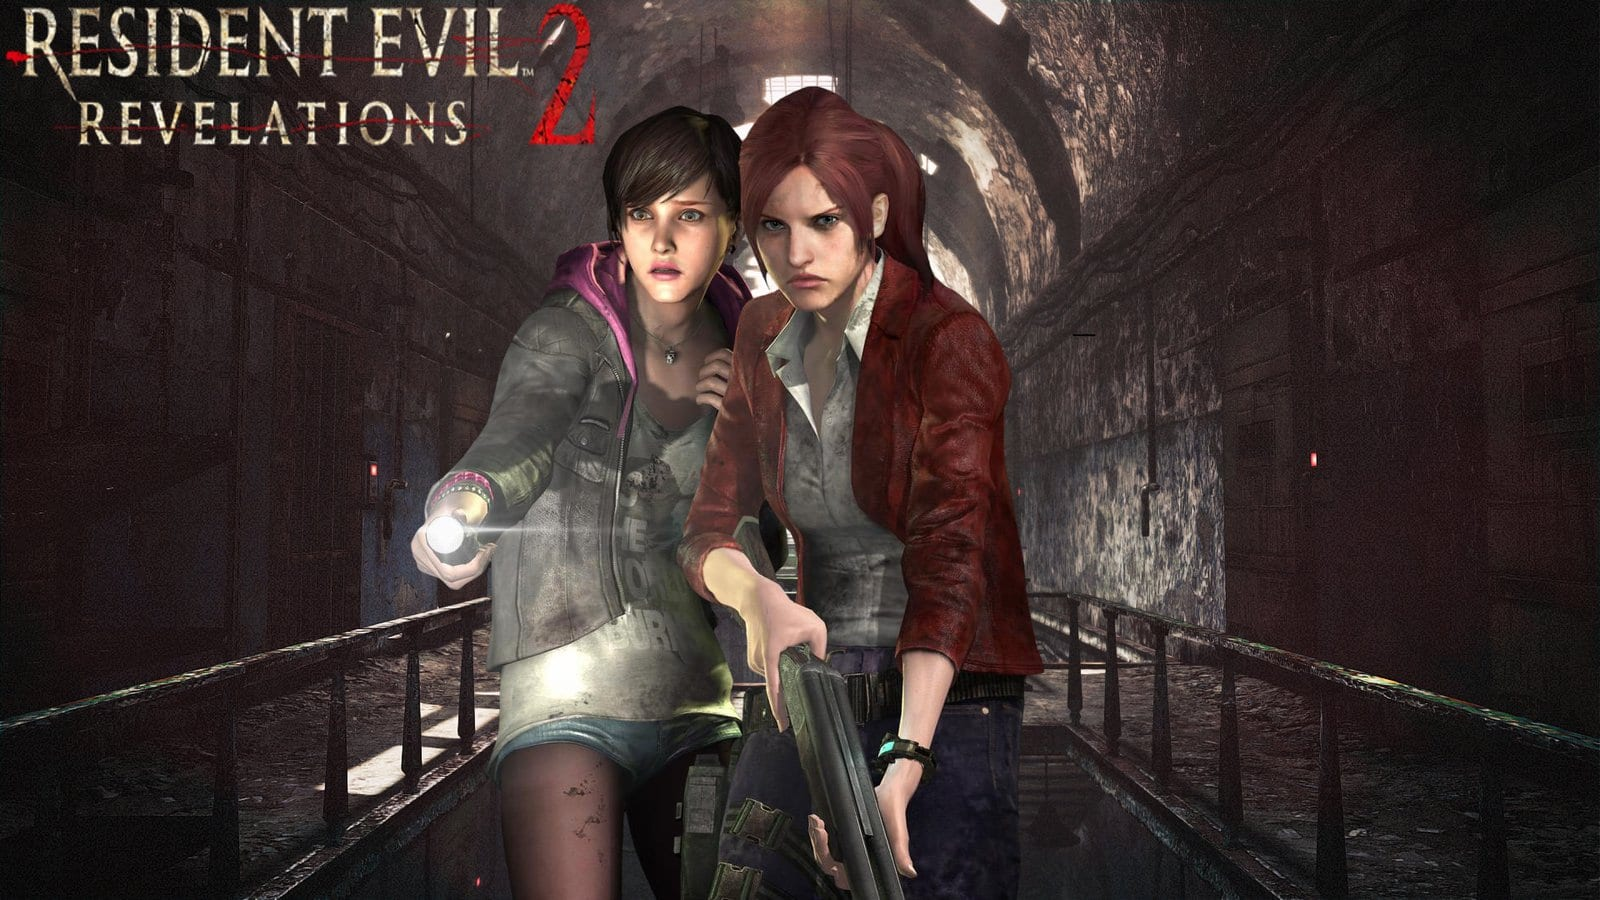 Resident Evil Revelations 1 & 2 Heading to Switch in November